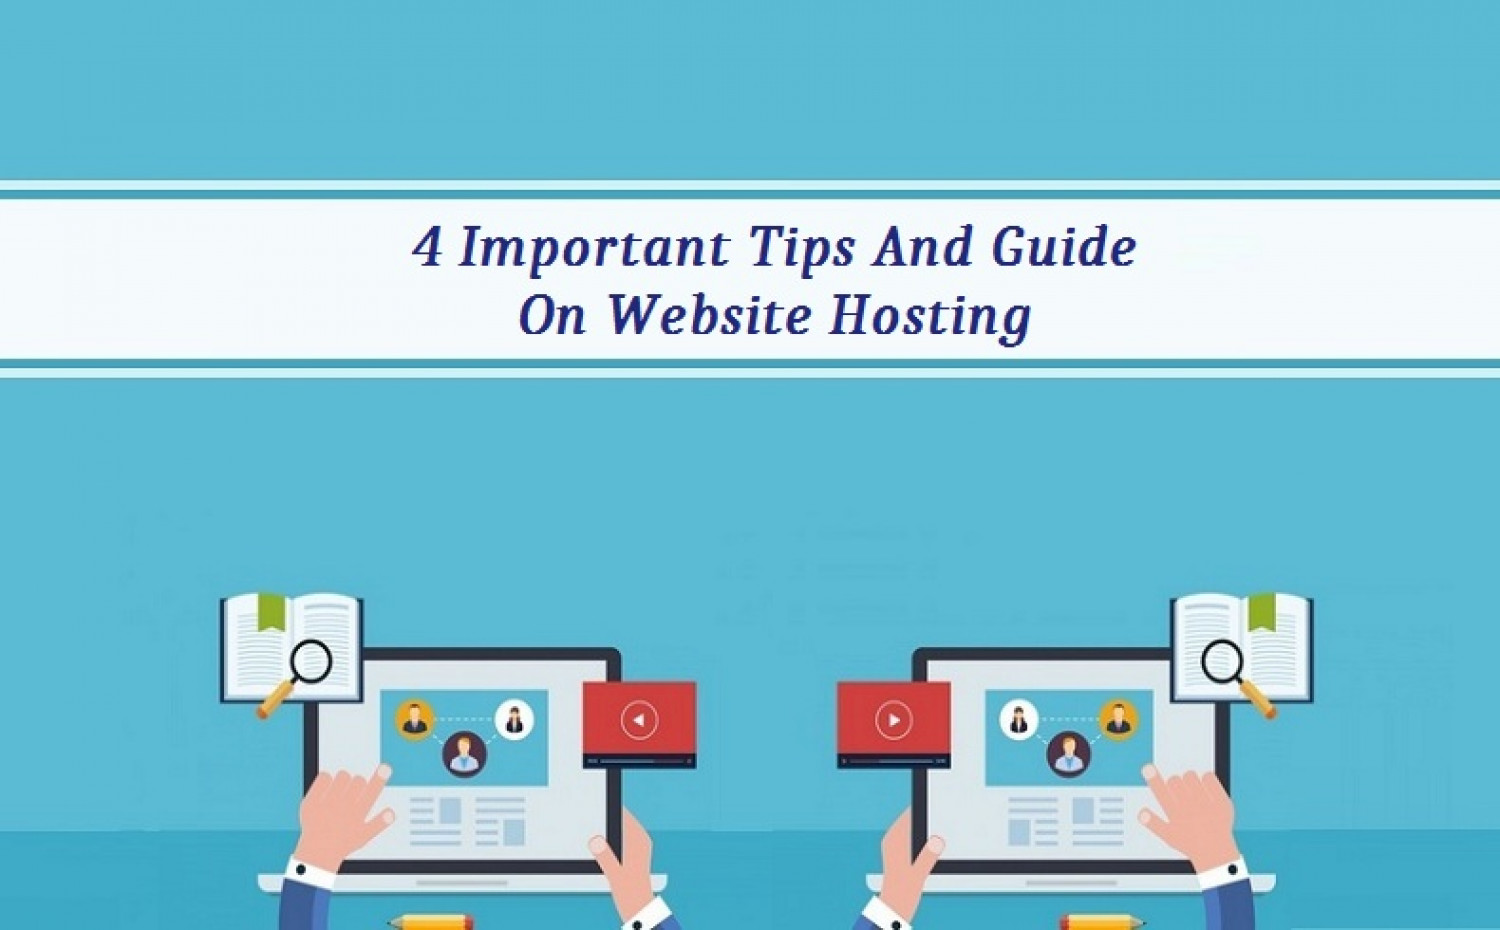 4 Important Tips And Guide On Website Hosting  Infographic